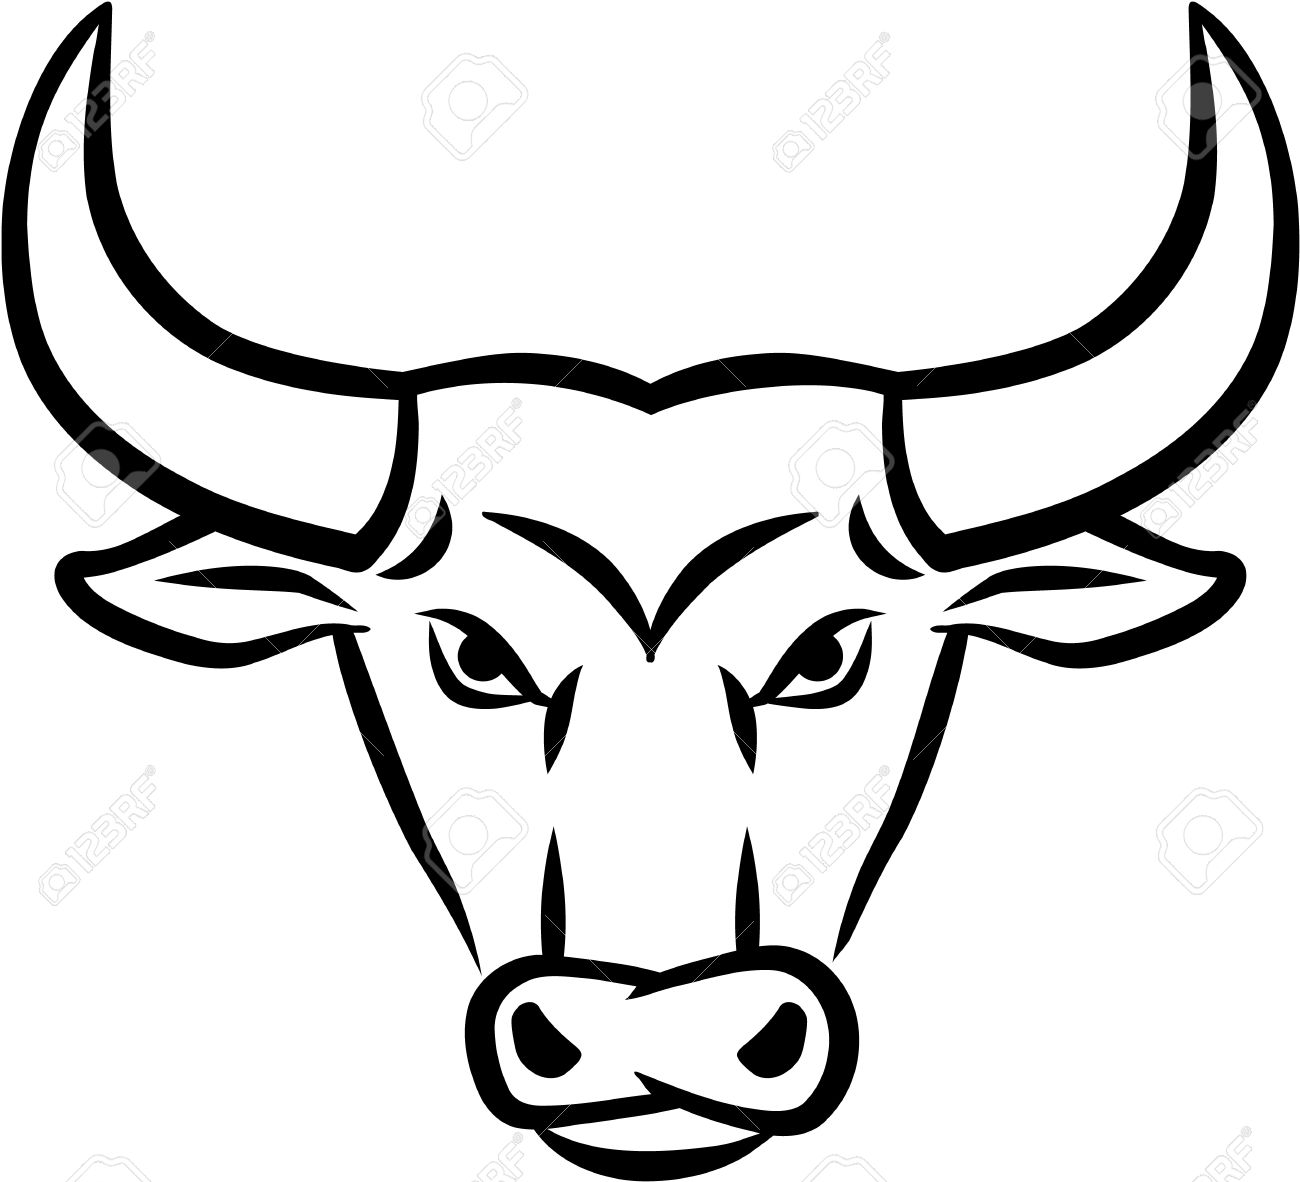 It is a graphic of Decisive Bull Head Drawing